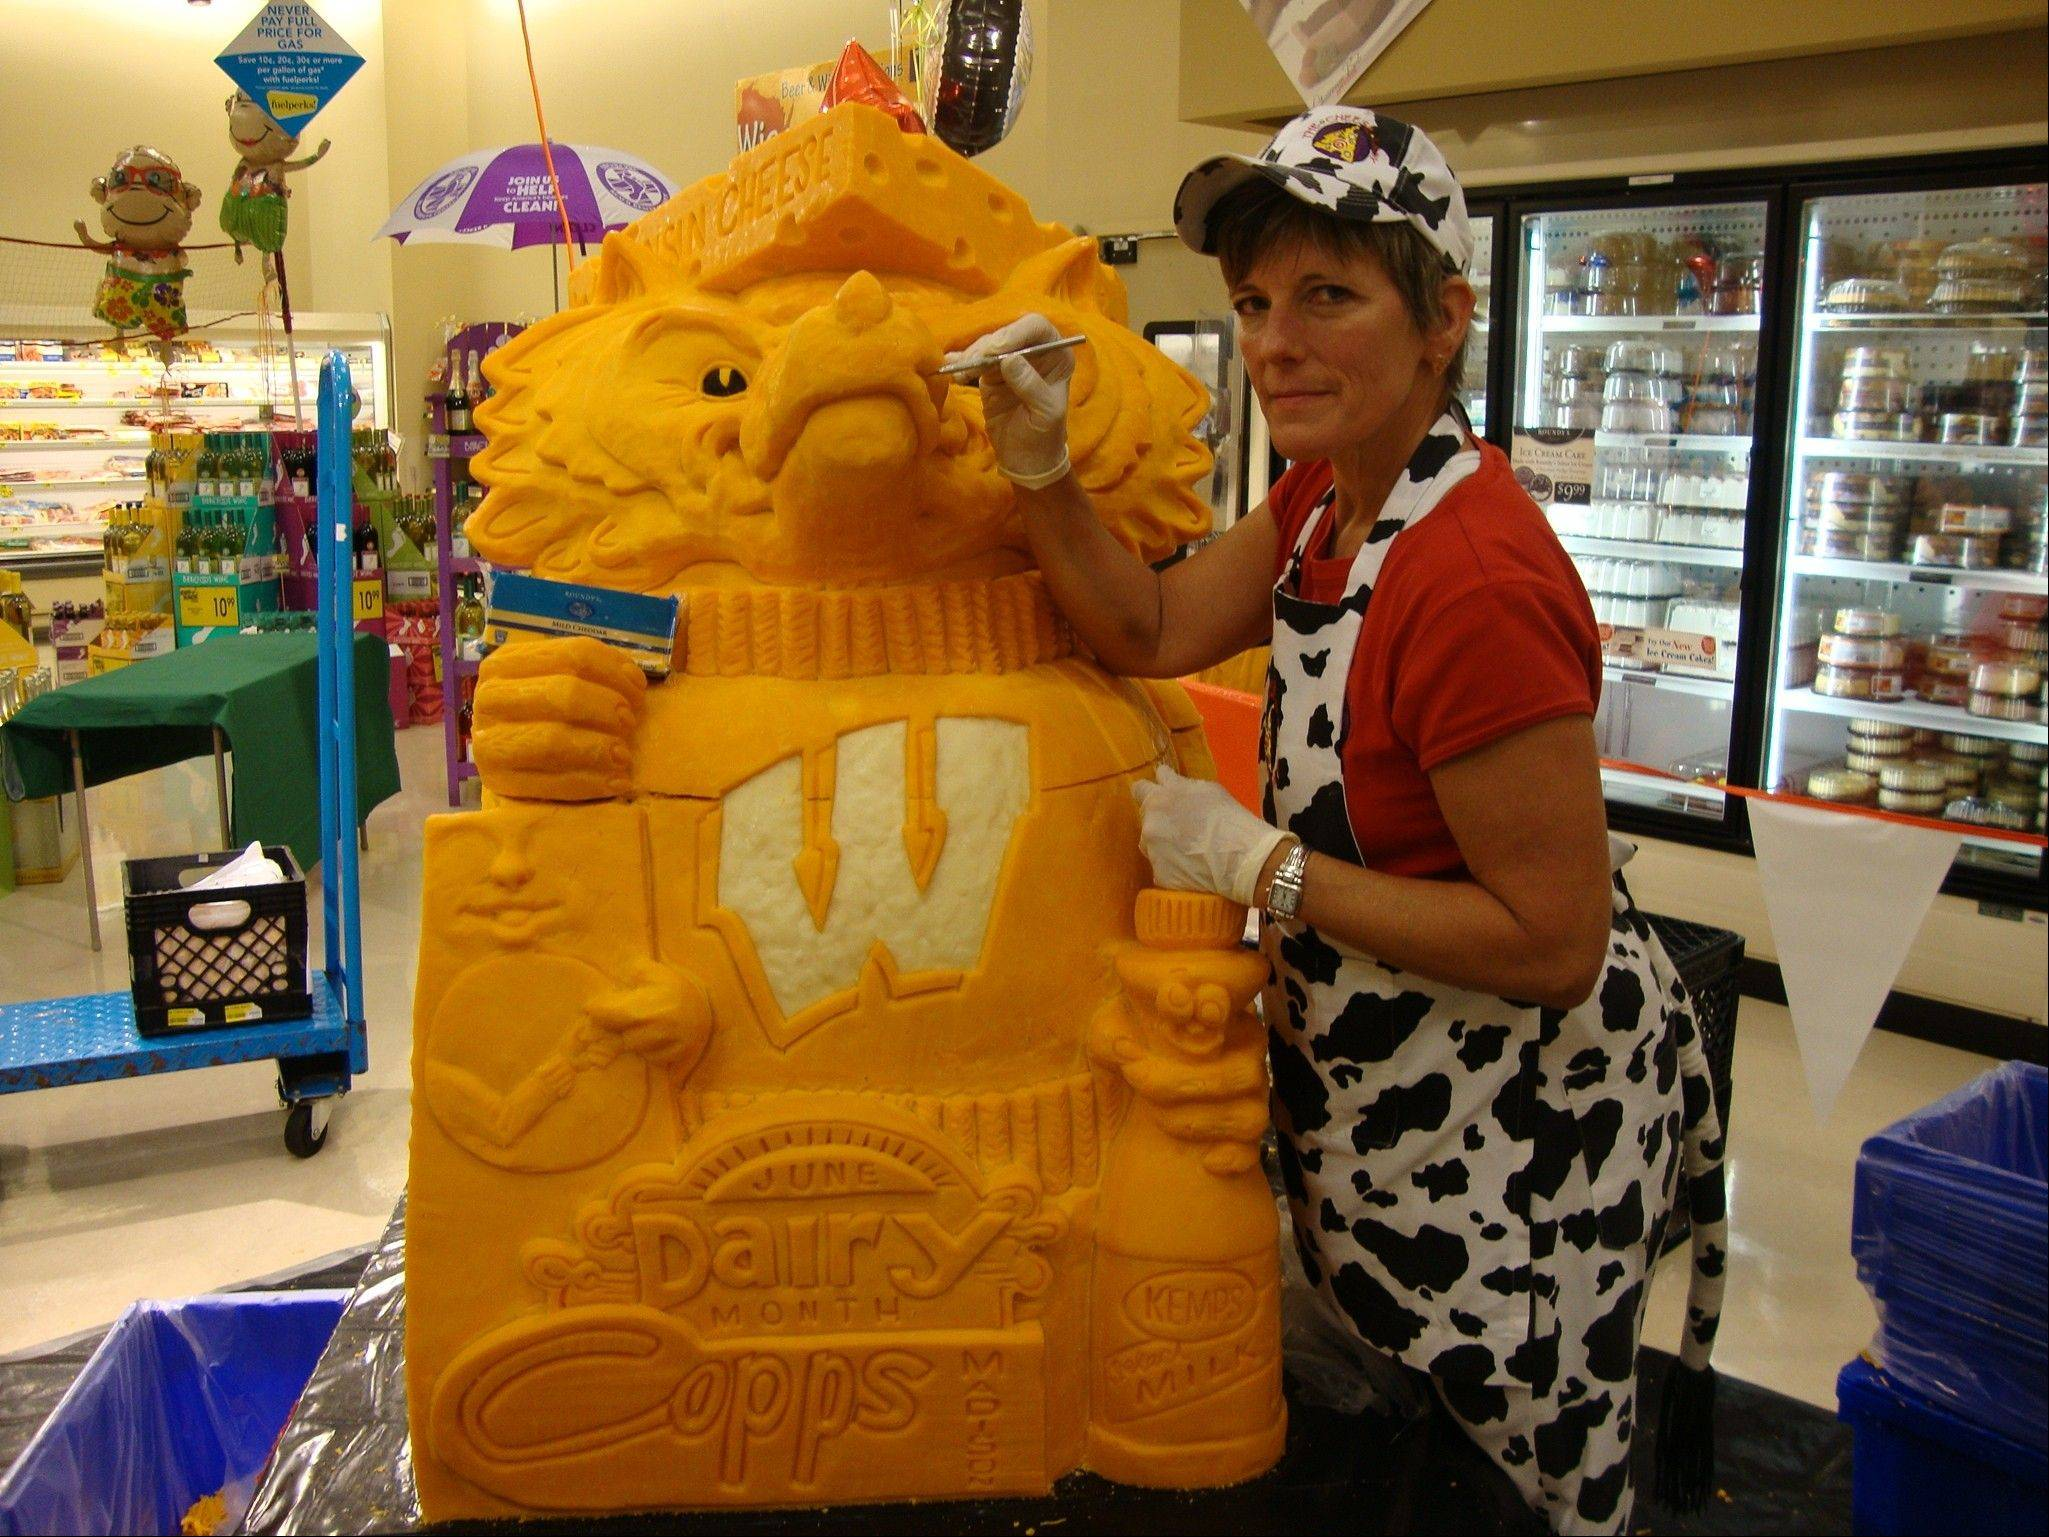 Illinois and Northwestern fans who feel Wisconsin's Bucky Badger mascot is a bit cheesy can thank cheese sculptor Sarah Kaufmann for this masterpiece in cheddar.